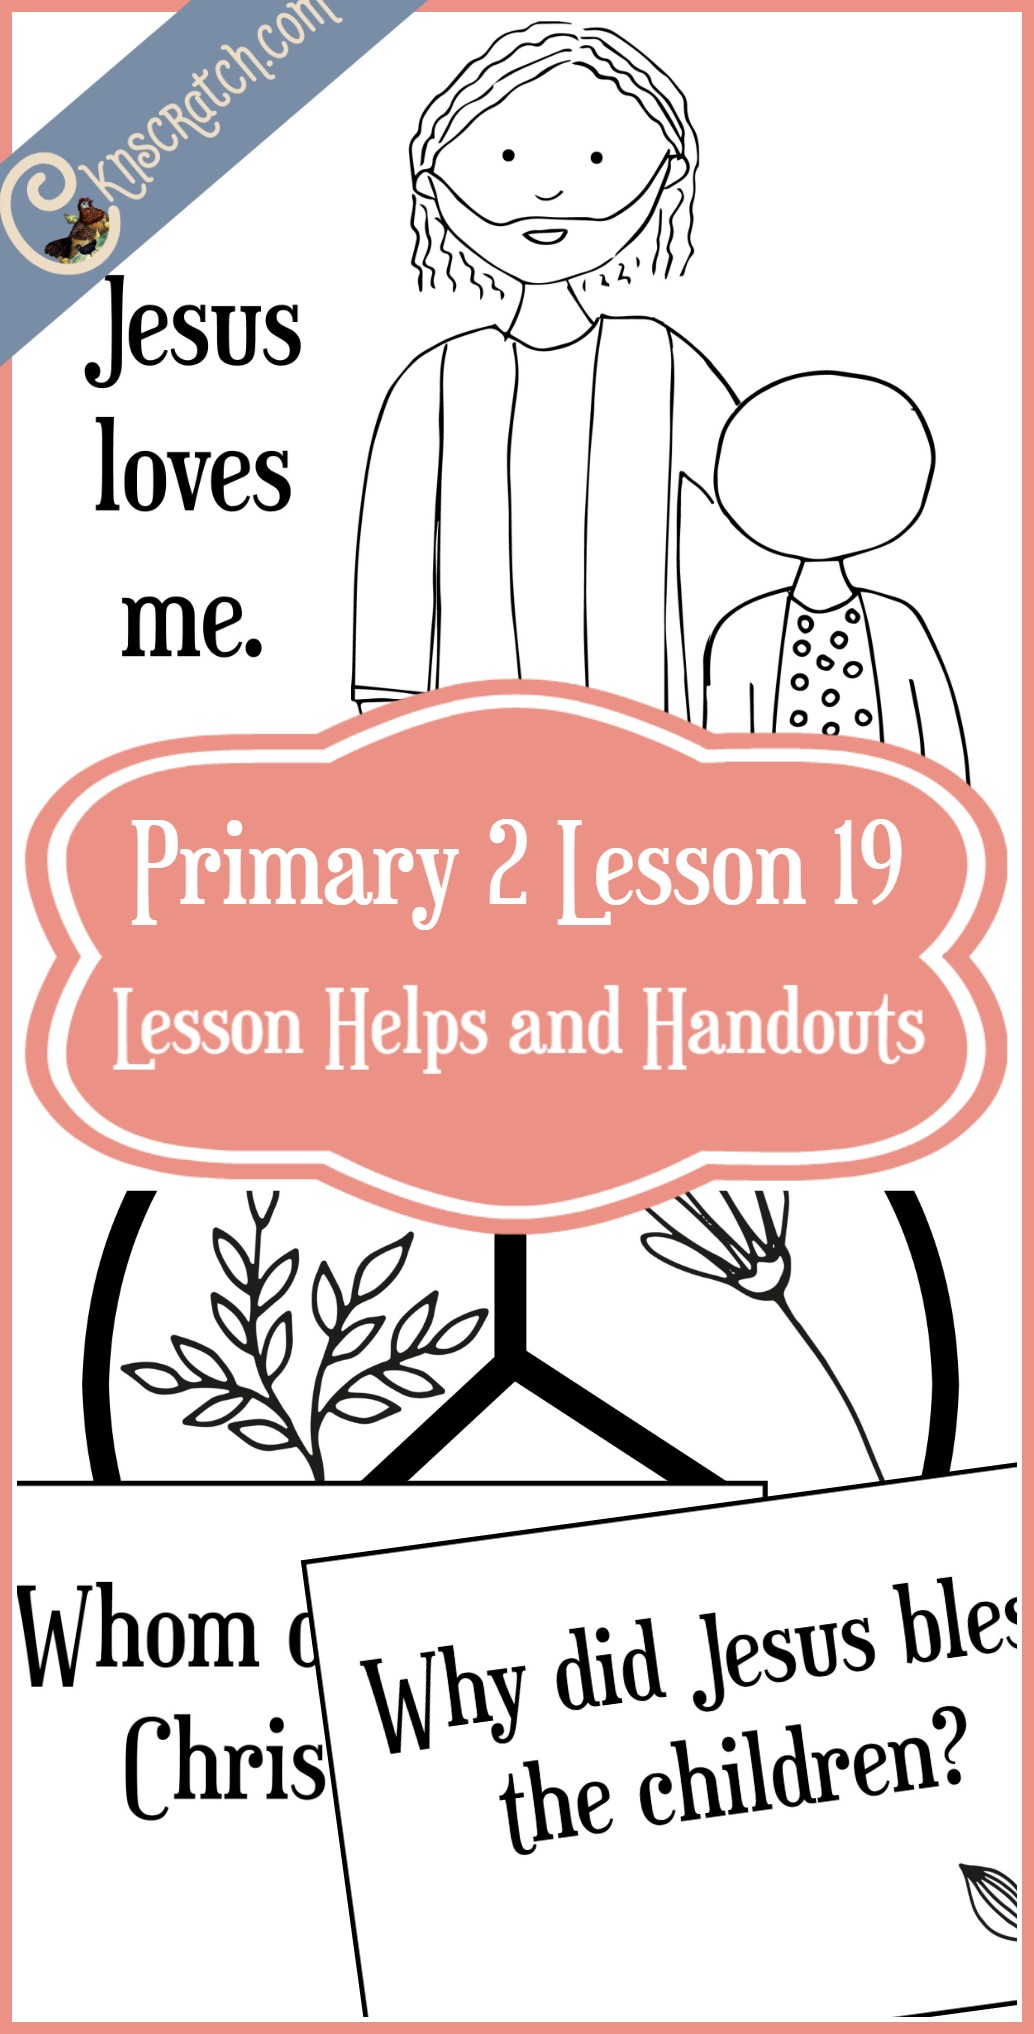 This is so helpful! LDS lesson helps for Primary 2 Lesson 19: Jesus Christ loves me